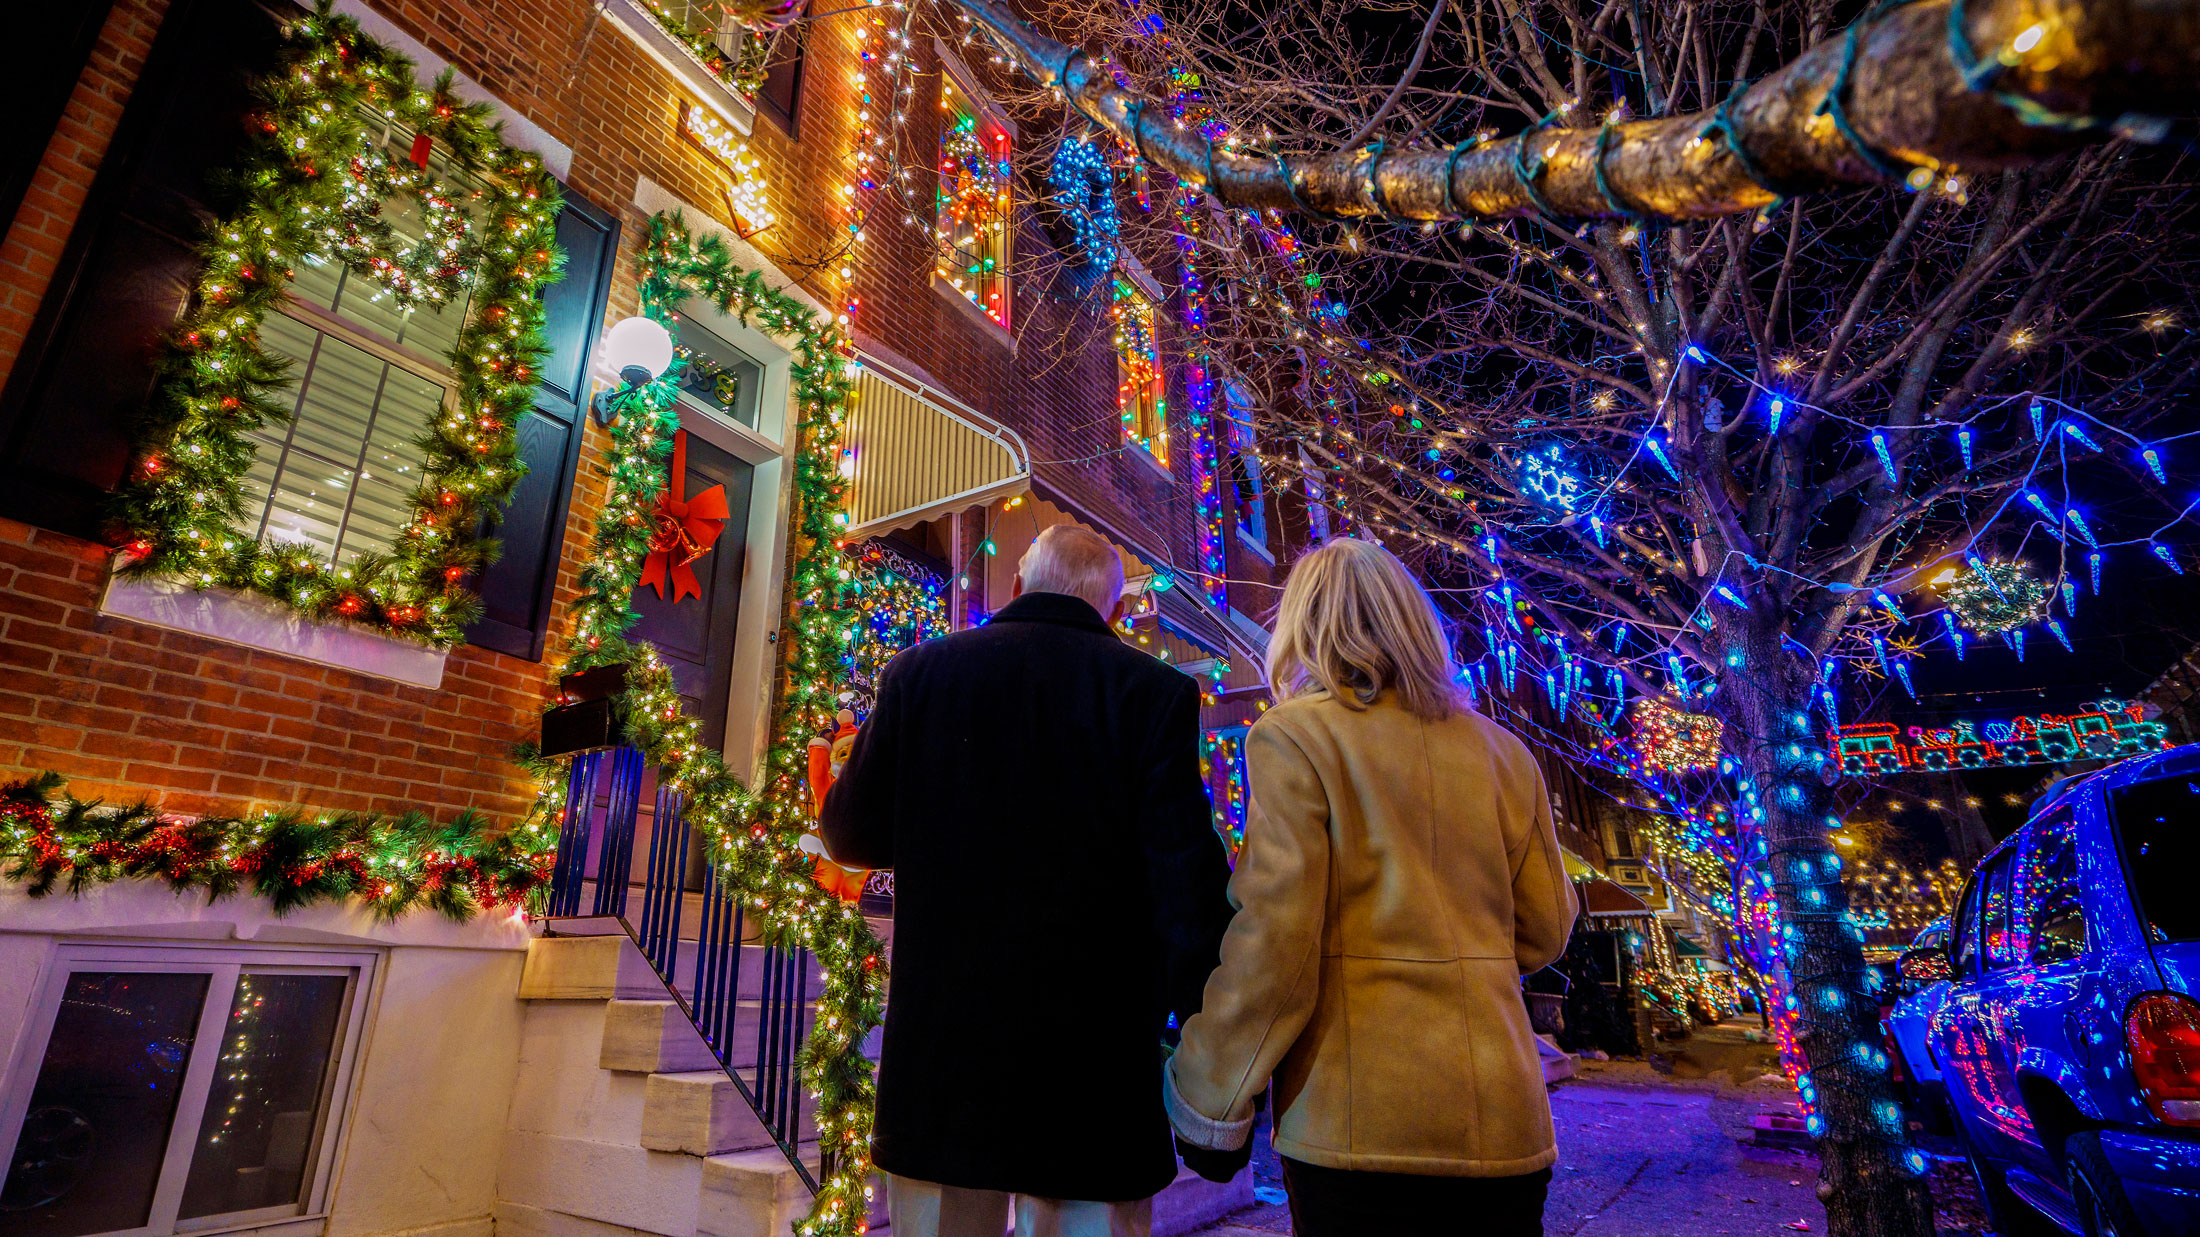 Food Lion Christmas Eve Hours 2019 The Top Places to View Holiday Lights in Philadelphia for 2018